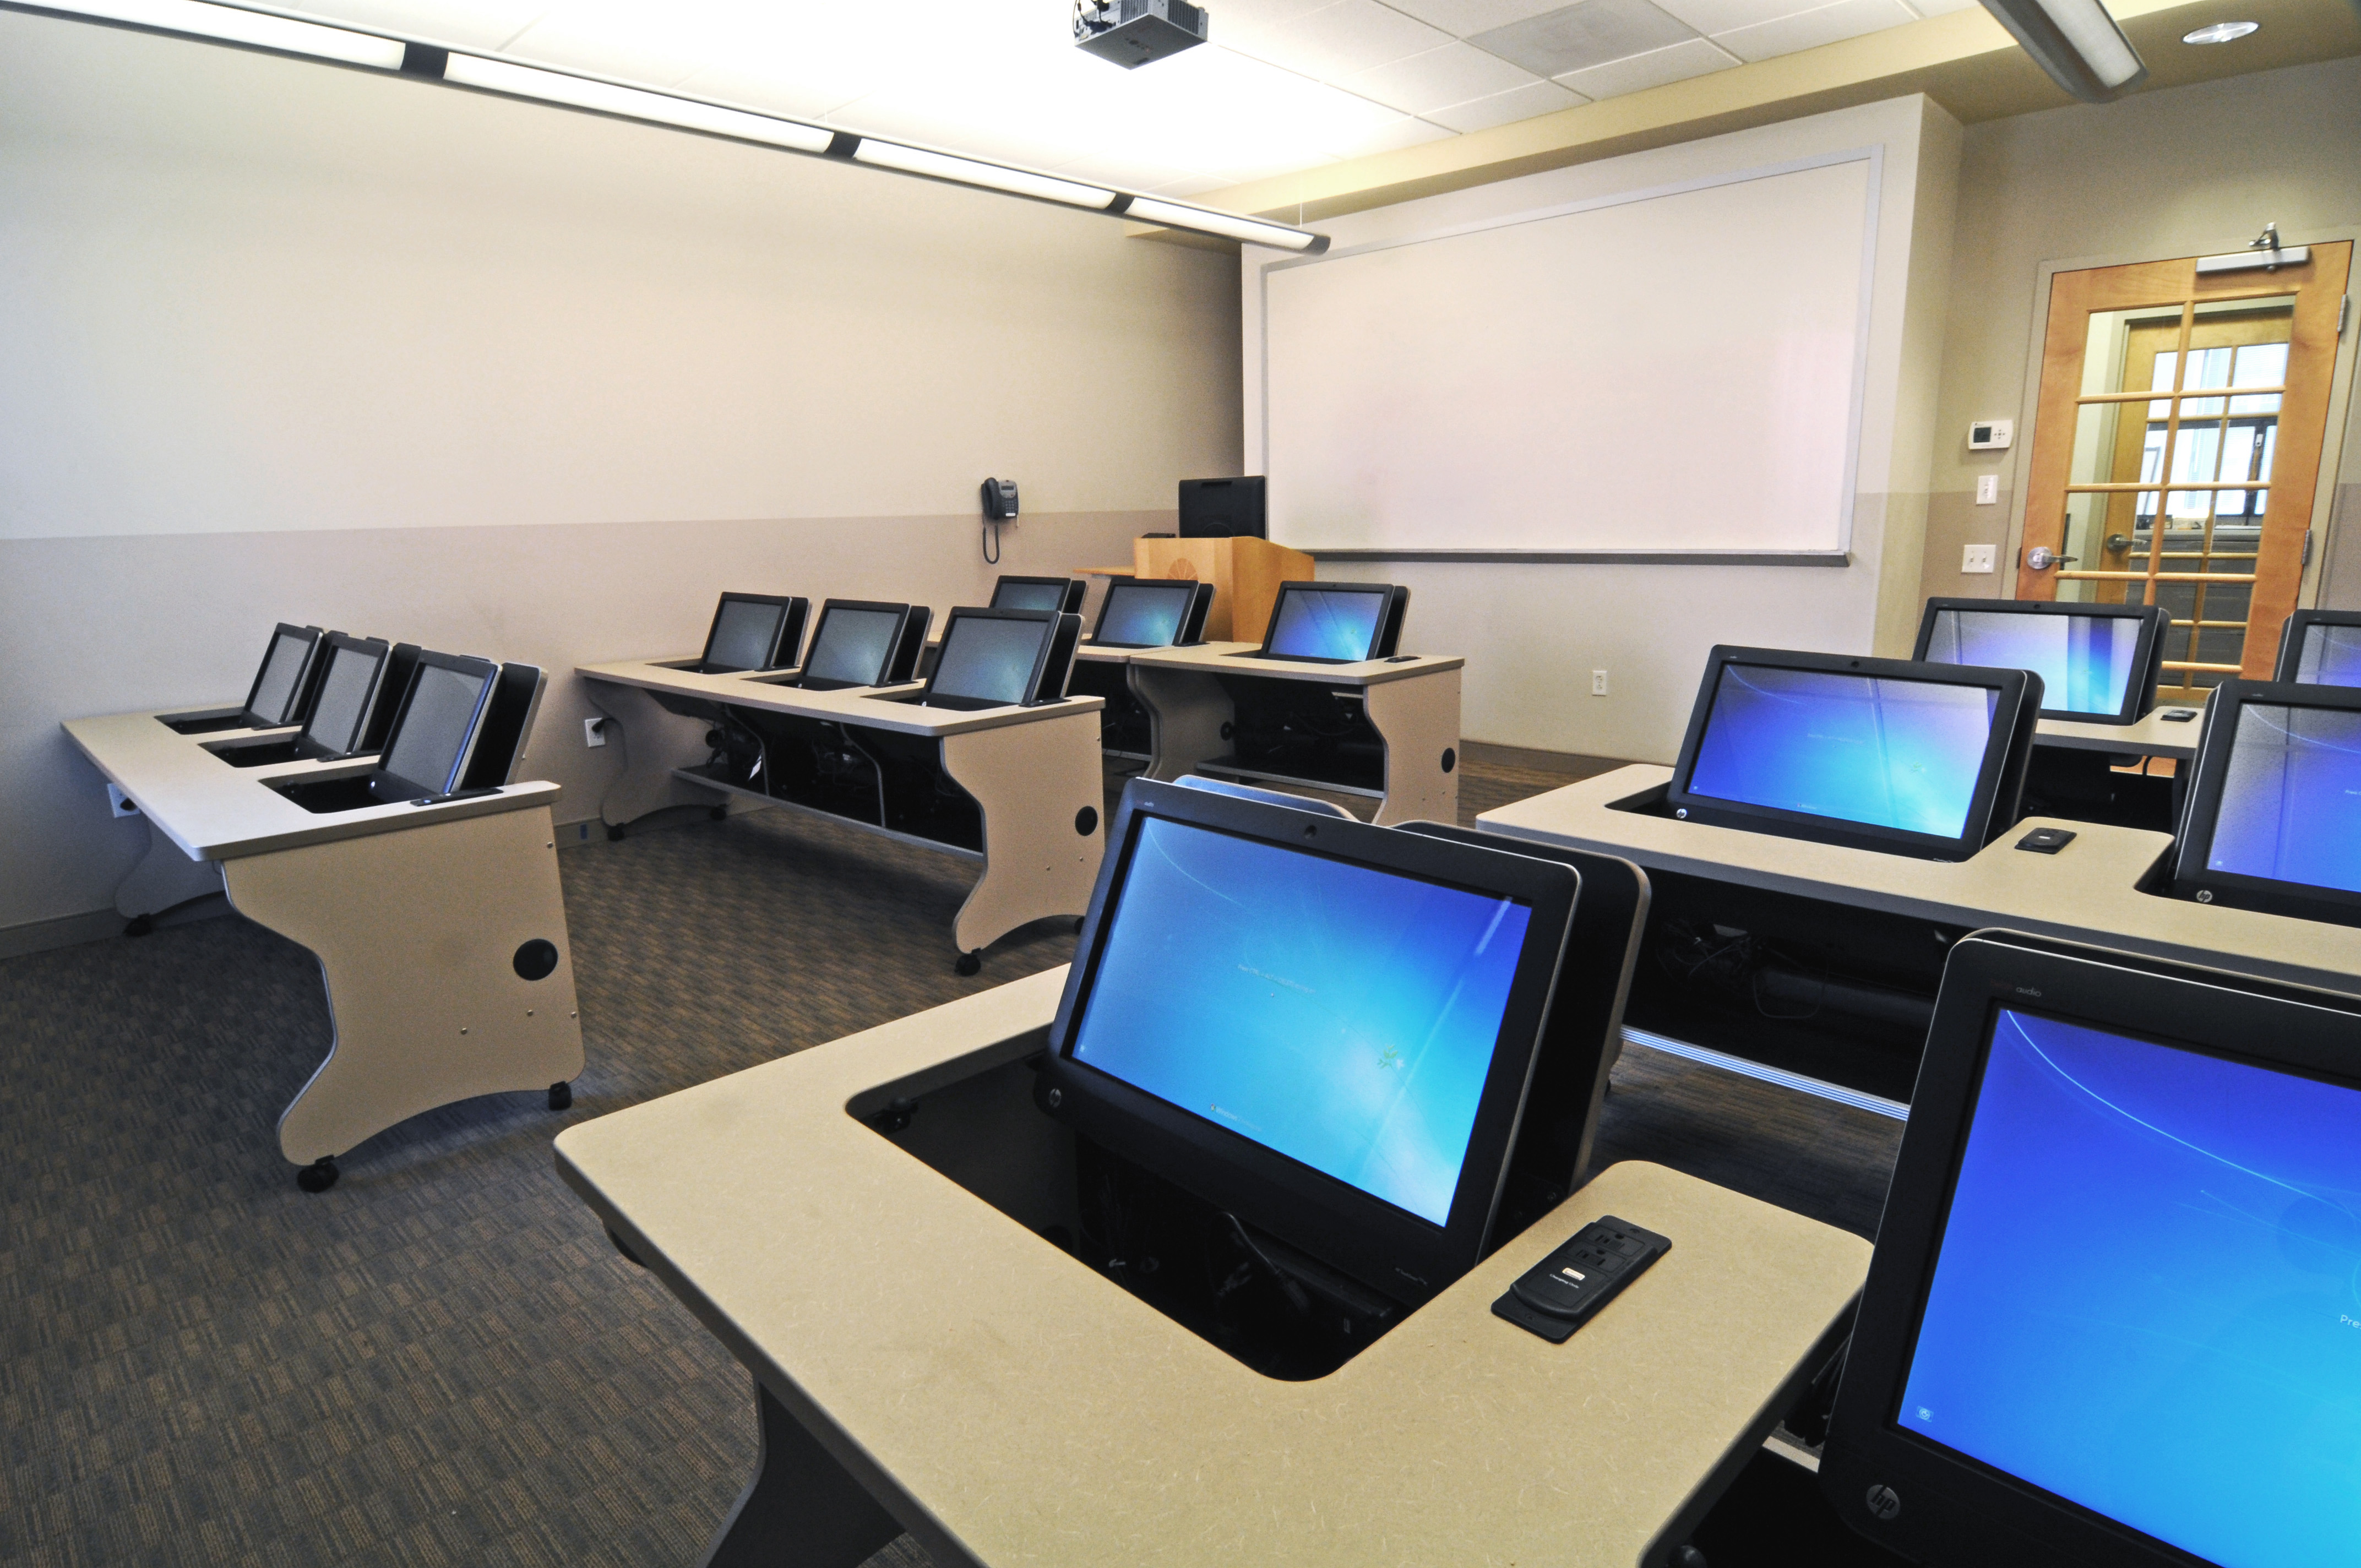 Ilid Touch All Inone Computer Desks Smartdesks Gives Multi Use Classroom Freedom For Educators